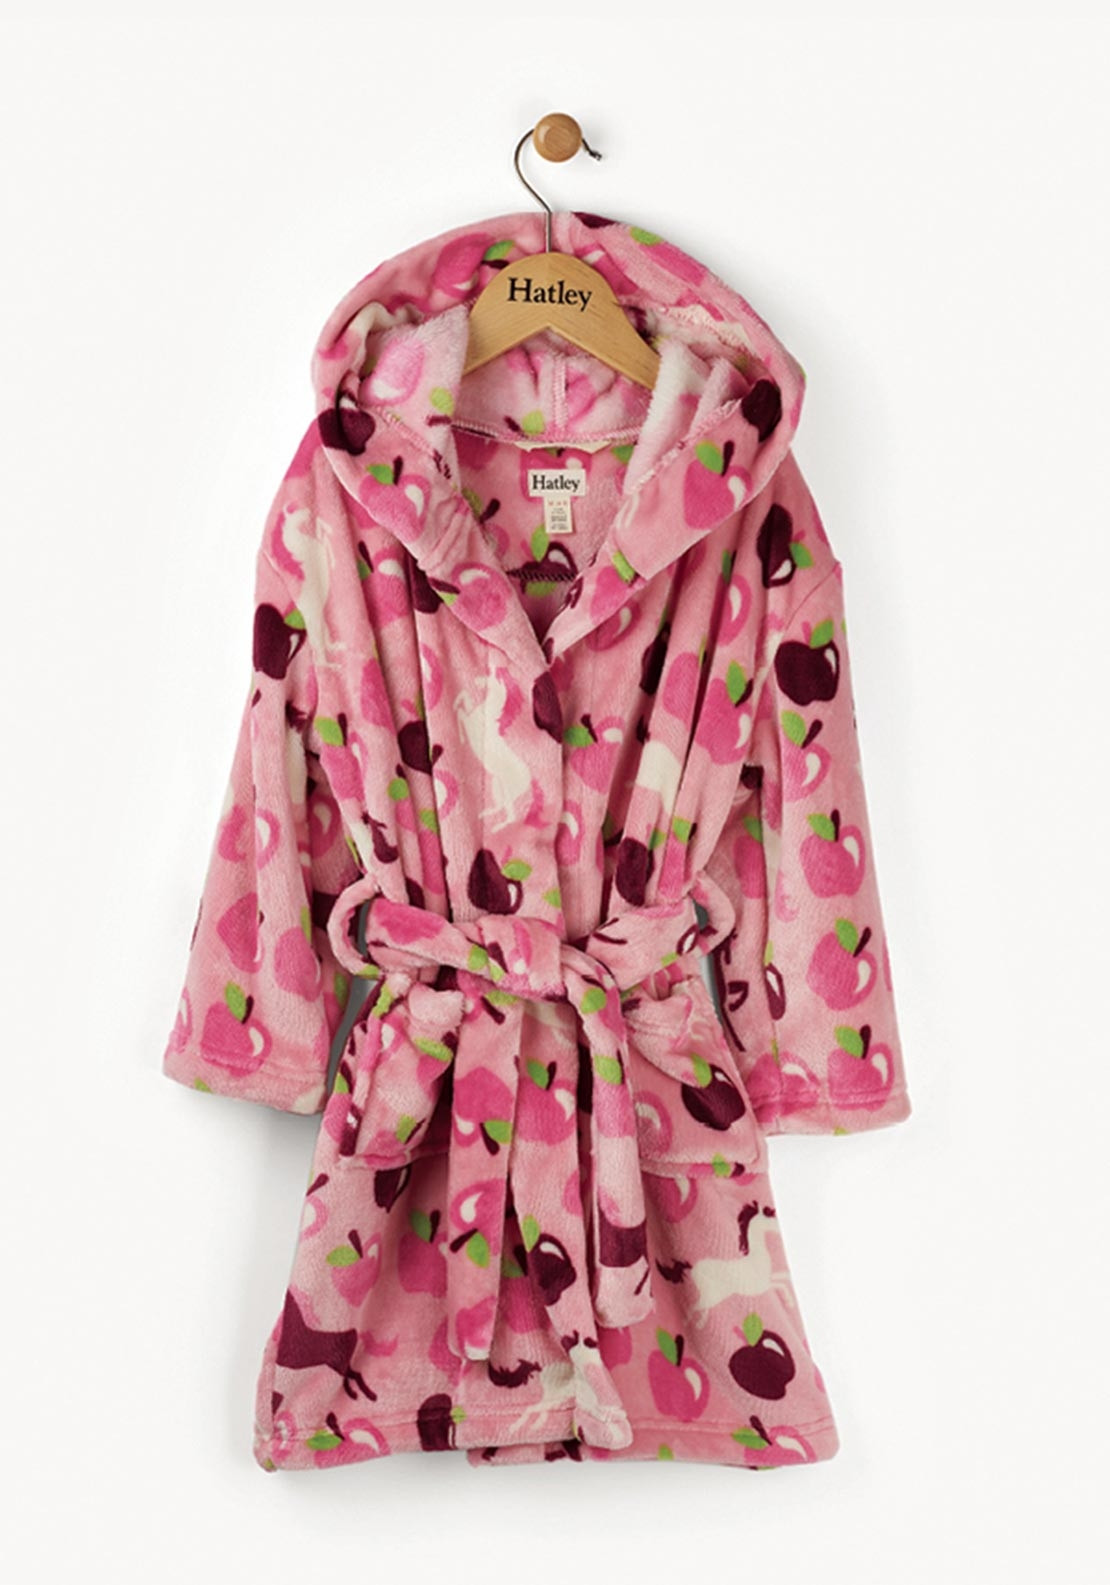 Hatley Girls Orchard Hoses Dressing Gown, Pink | McElhinneys